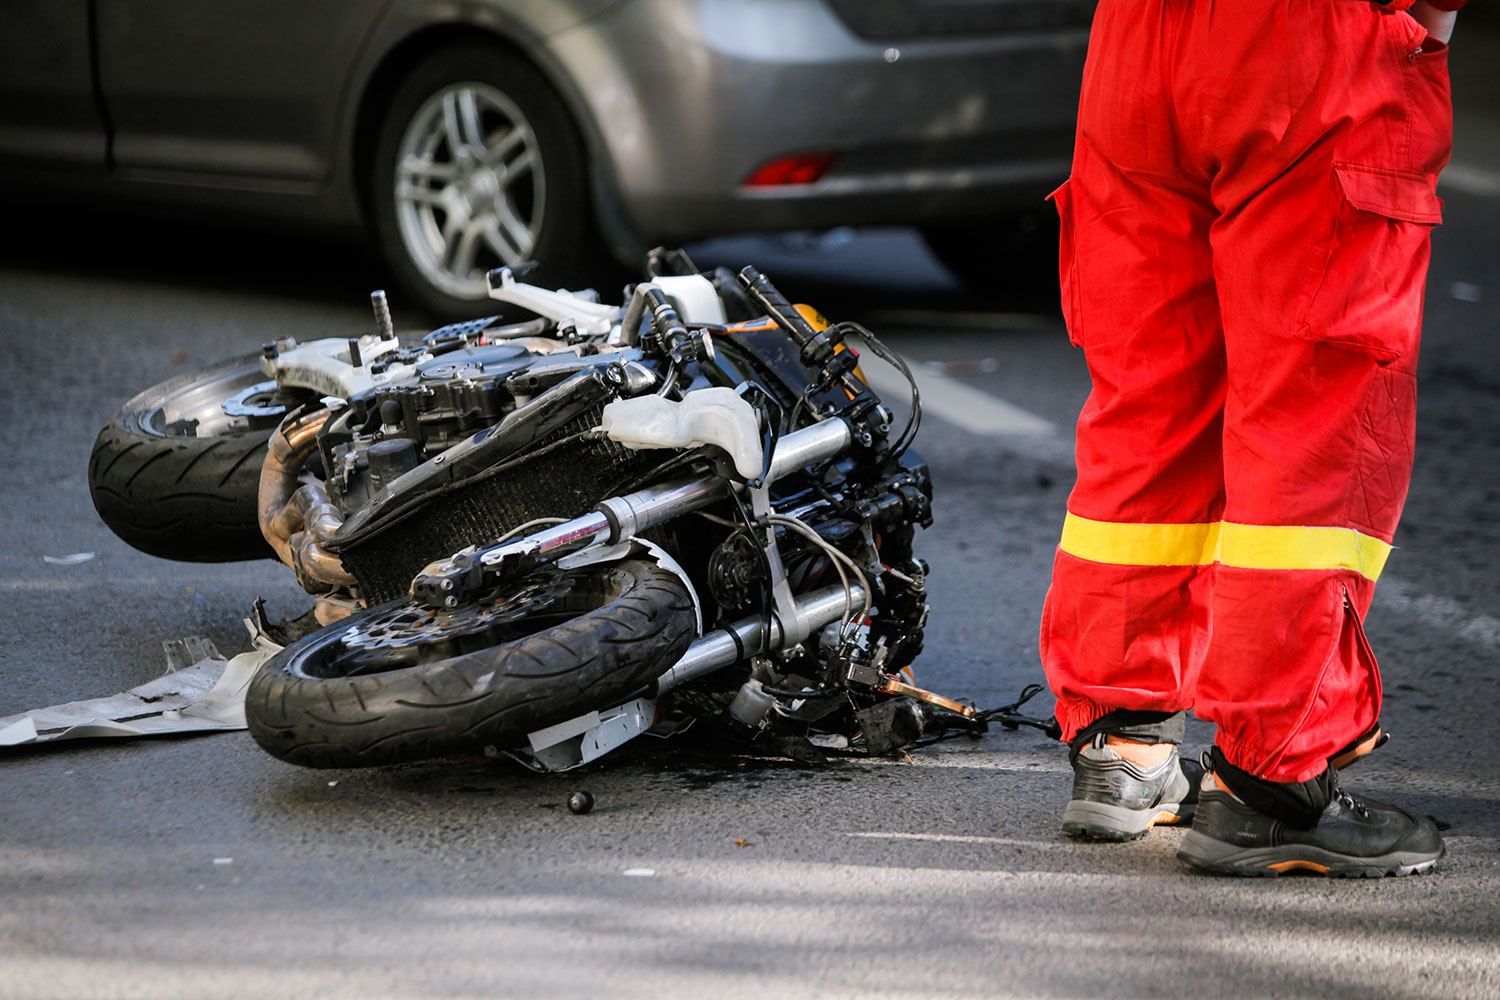 after a motorcycle accident